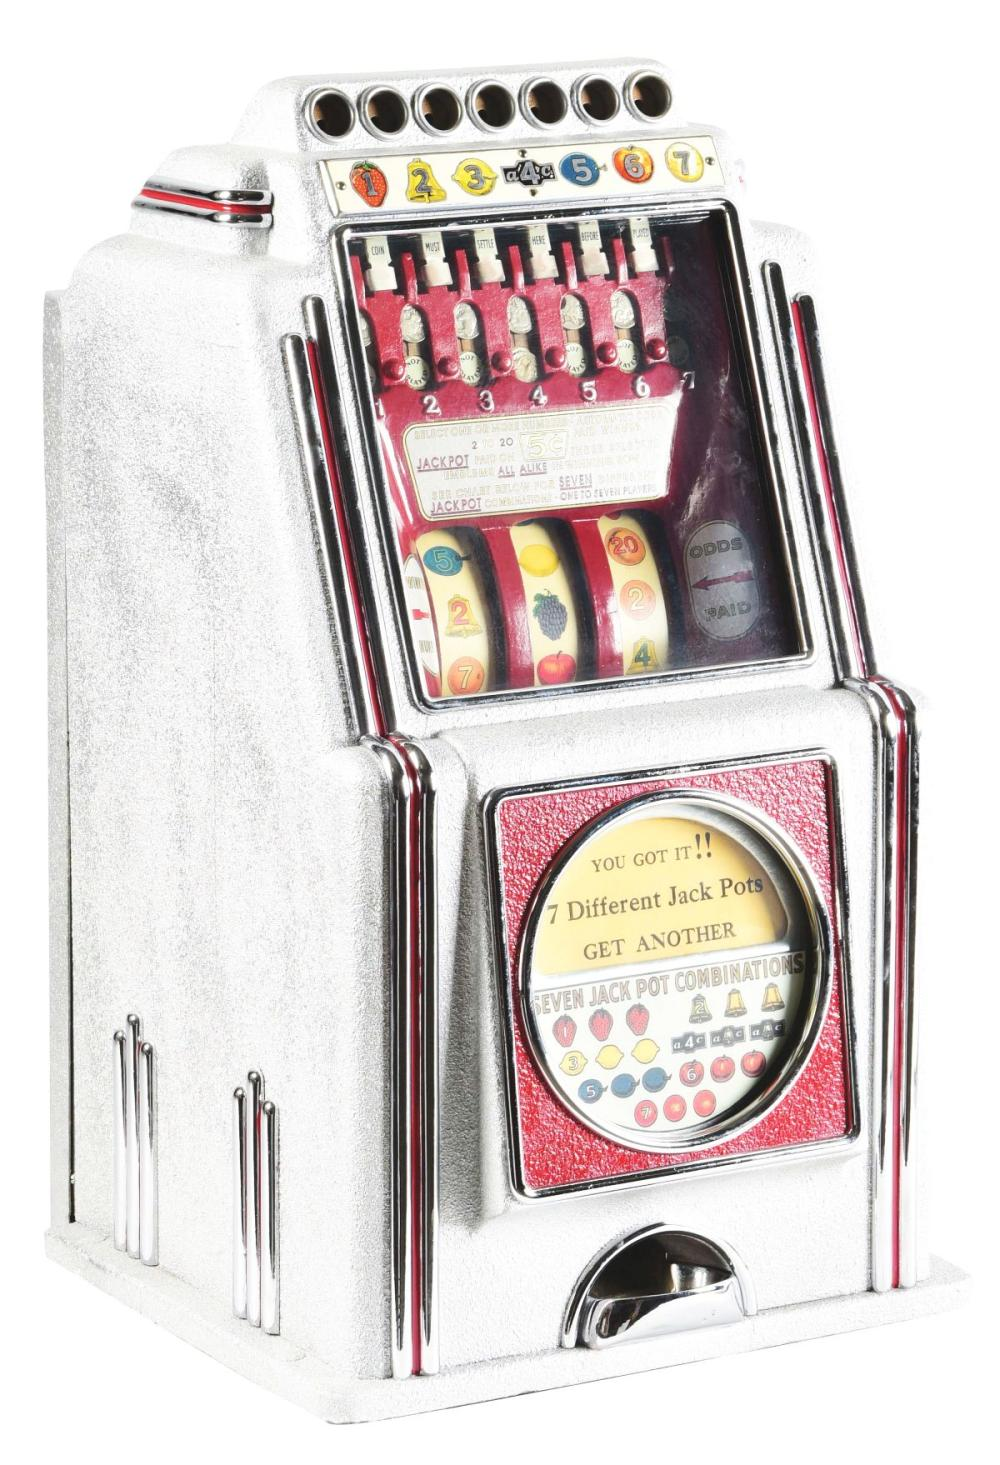 5¢ RARE A. C. NOVELTY MULTI BELL SLOT MACHINE.